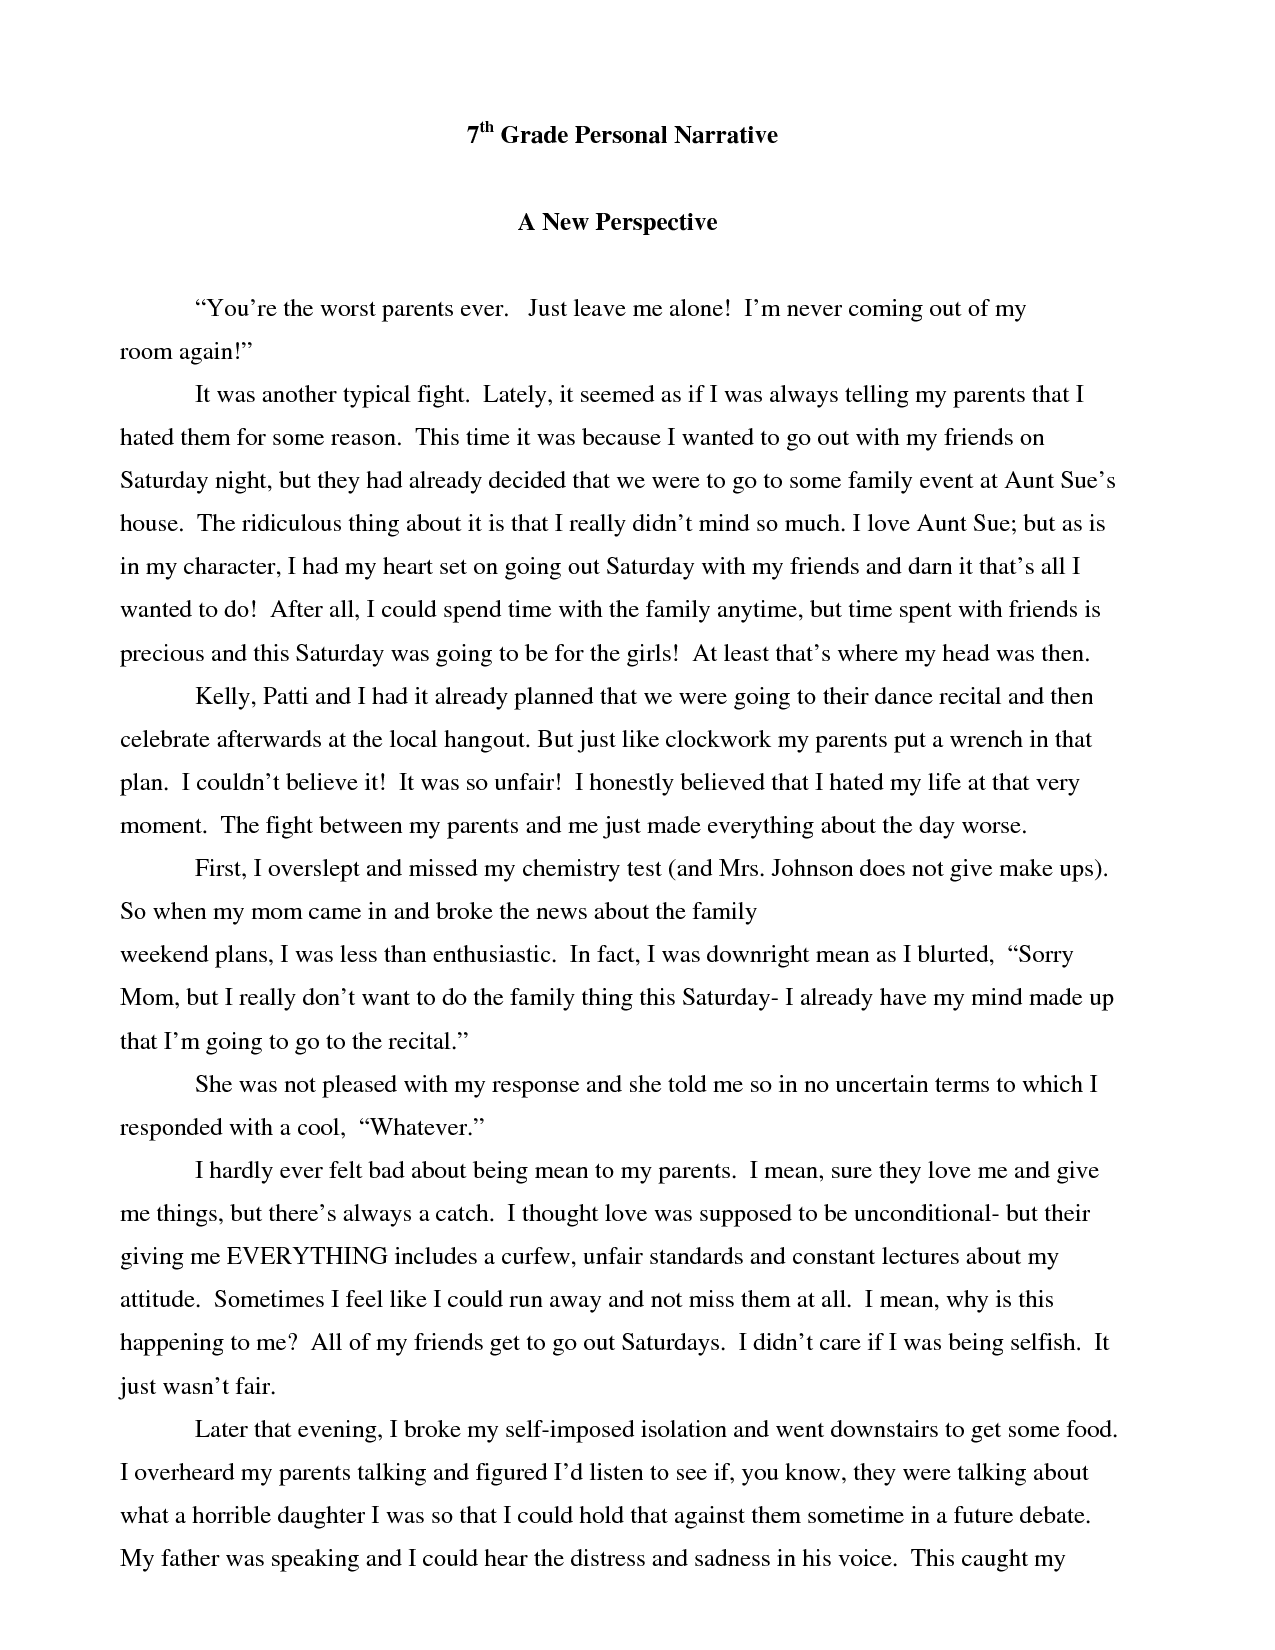 014 Narrative Essay Sample Of Personal Experience Essays L Dreaded Spm 2011 About Love Interesting Samples Full